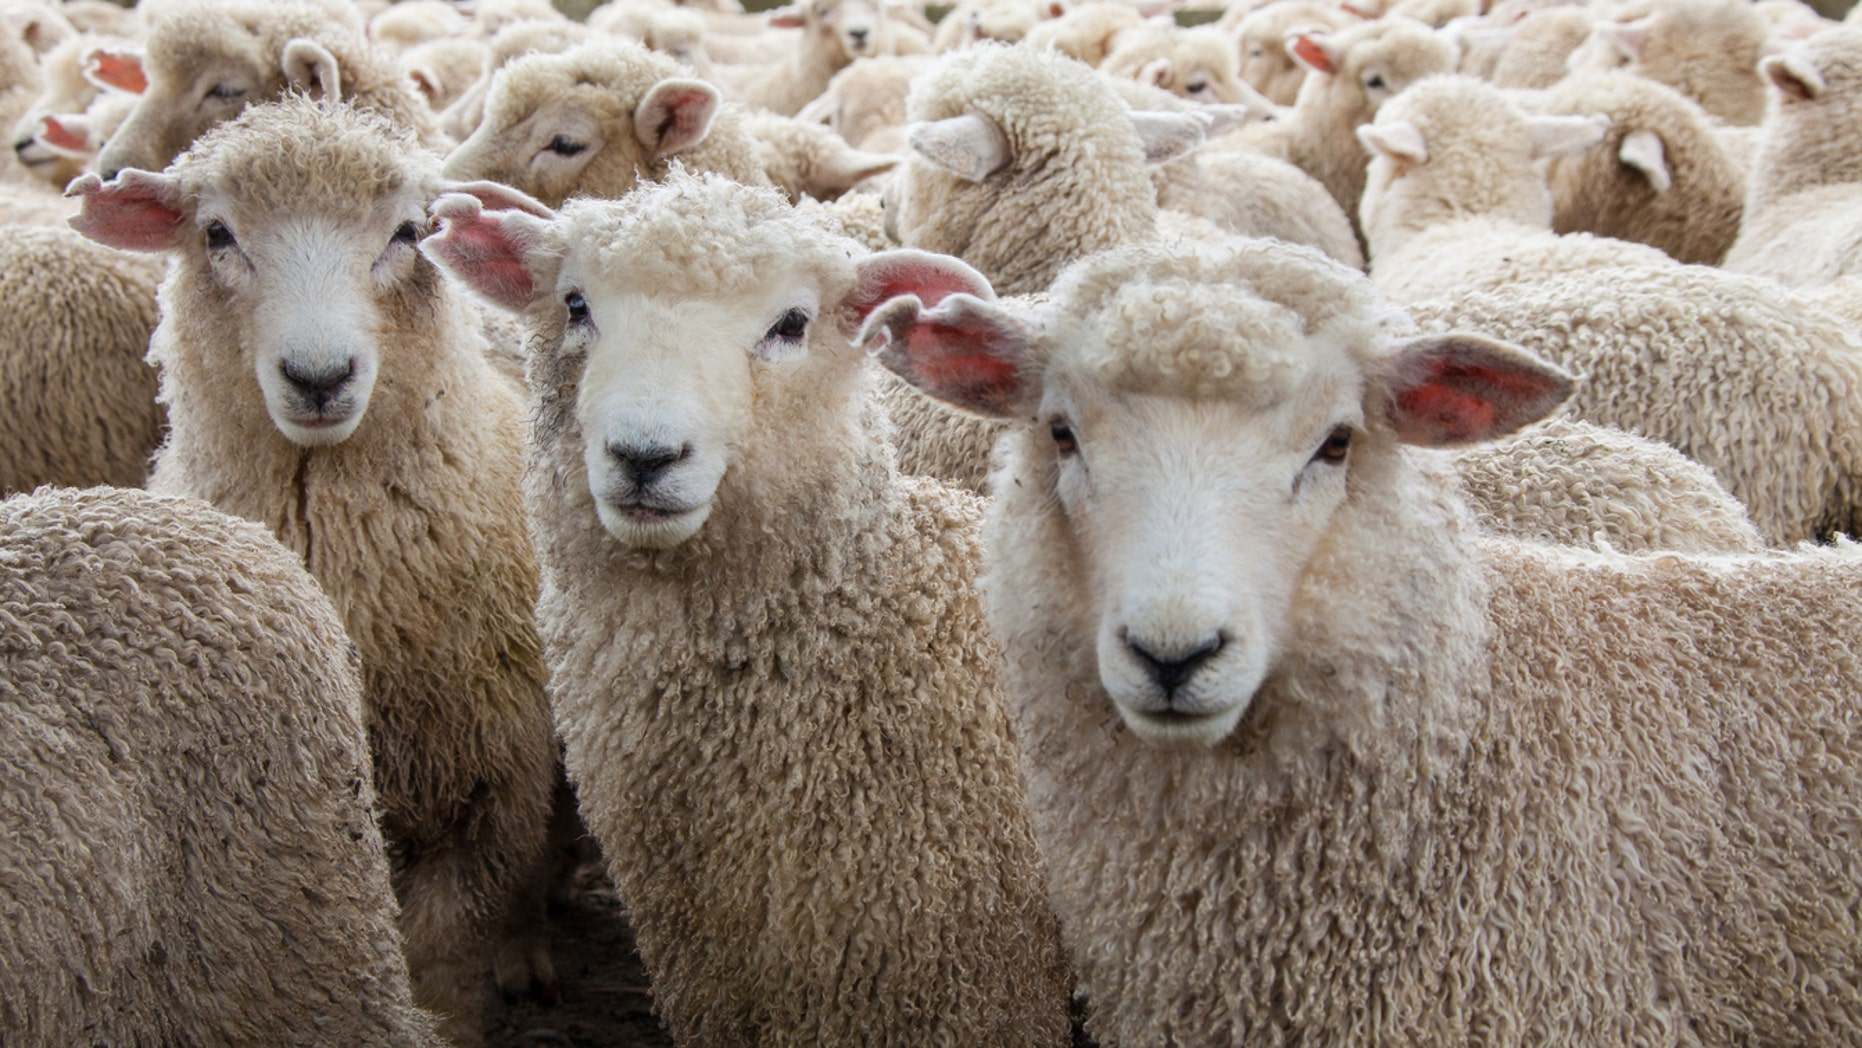 Hundreds of sheep jump to their deaths following bear attack.